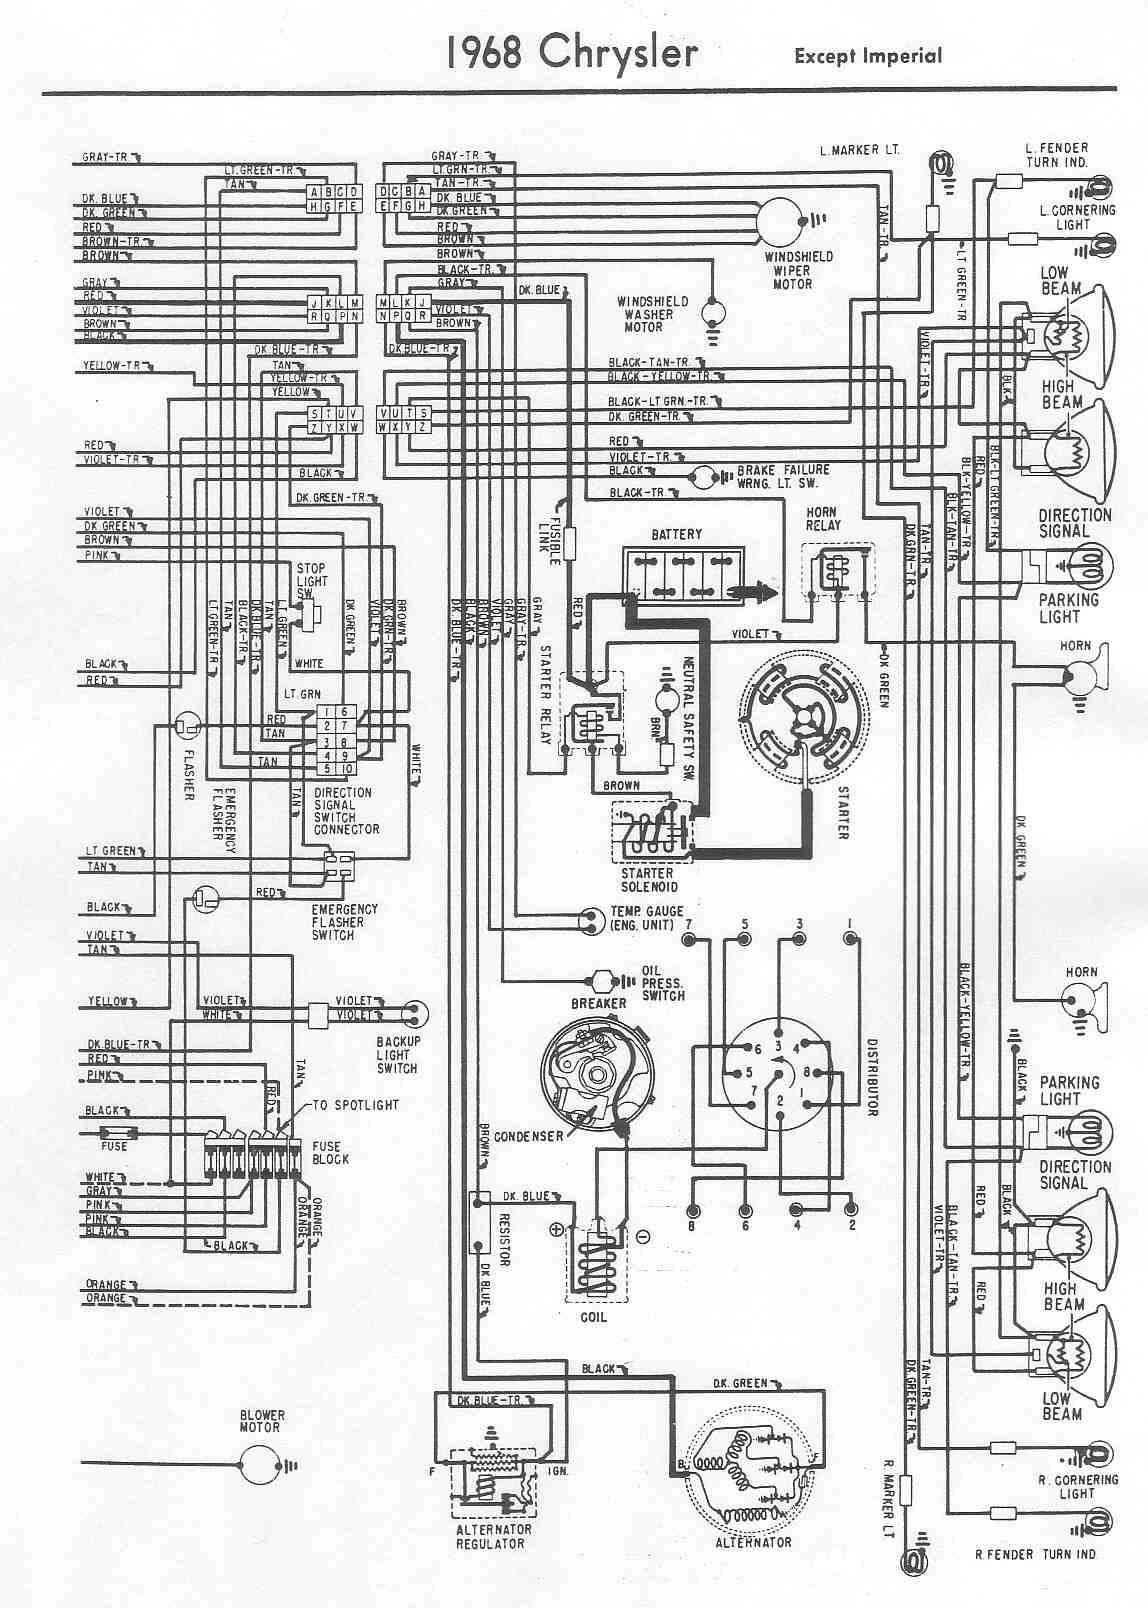 68 Cadillac Wiring Diagram Search For Diagrams Harness 1966 Newport Online Schematic U2022 Rh Holyoak Co 2003 Cts 1968 Deville